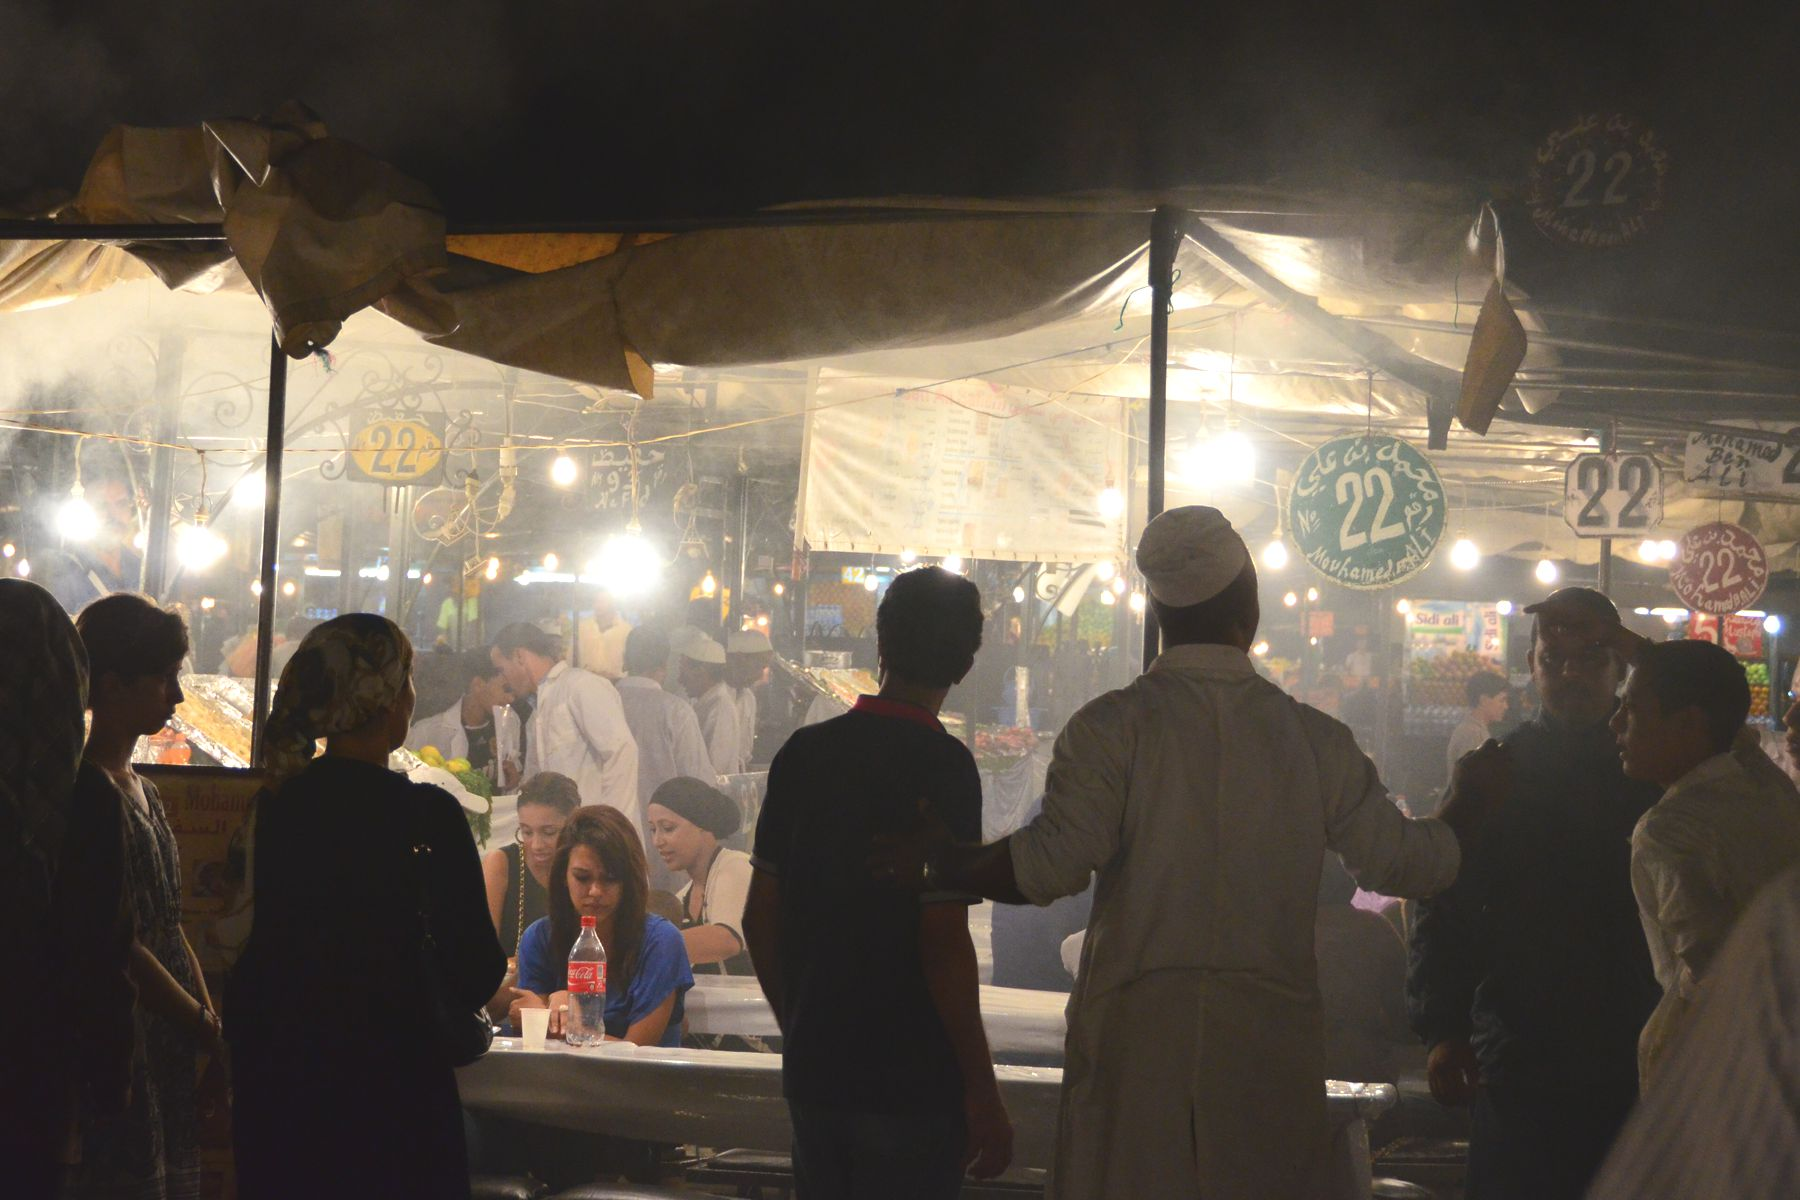 Food stalls at Jemaa el-Fnaa square in Marrakech, Morocco